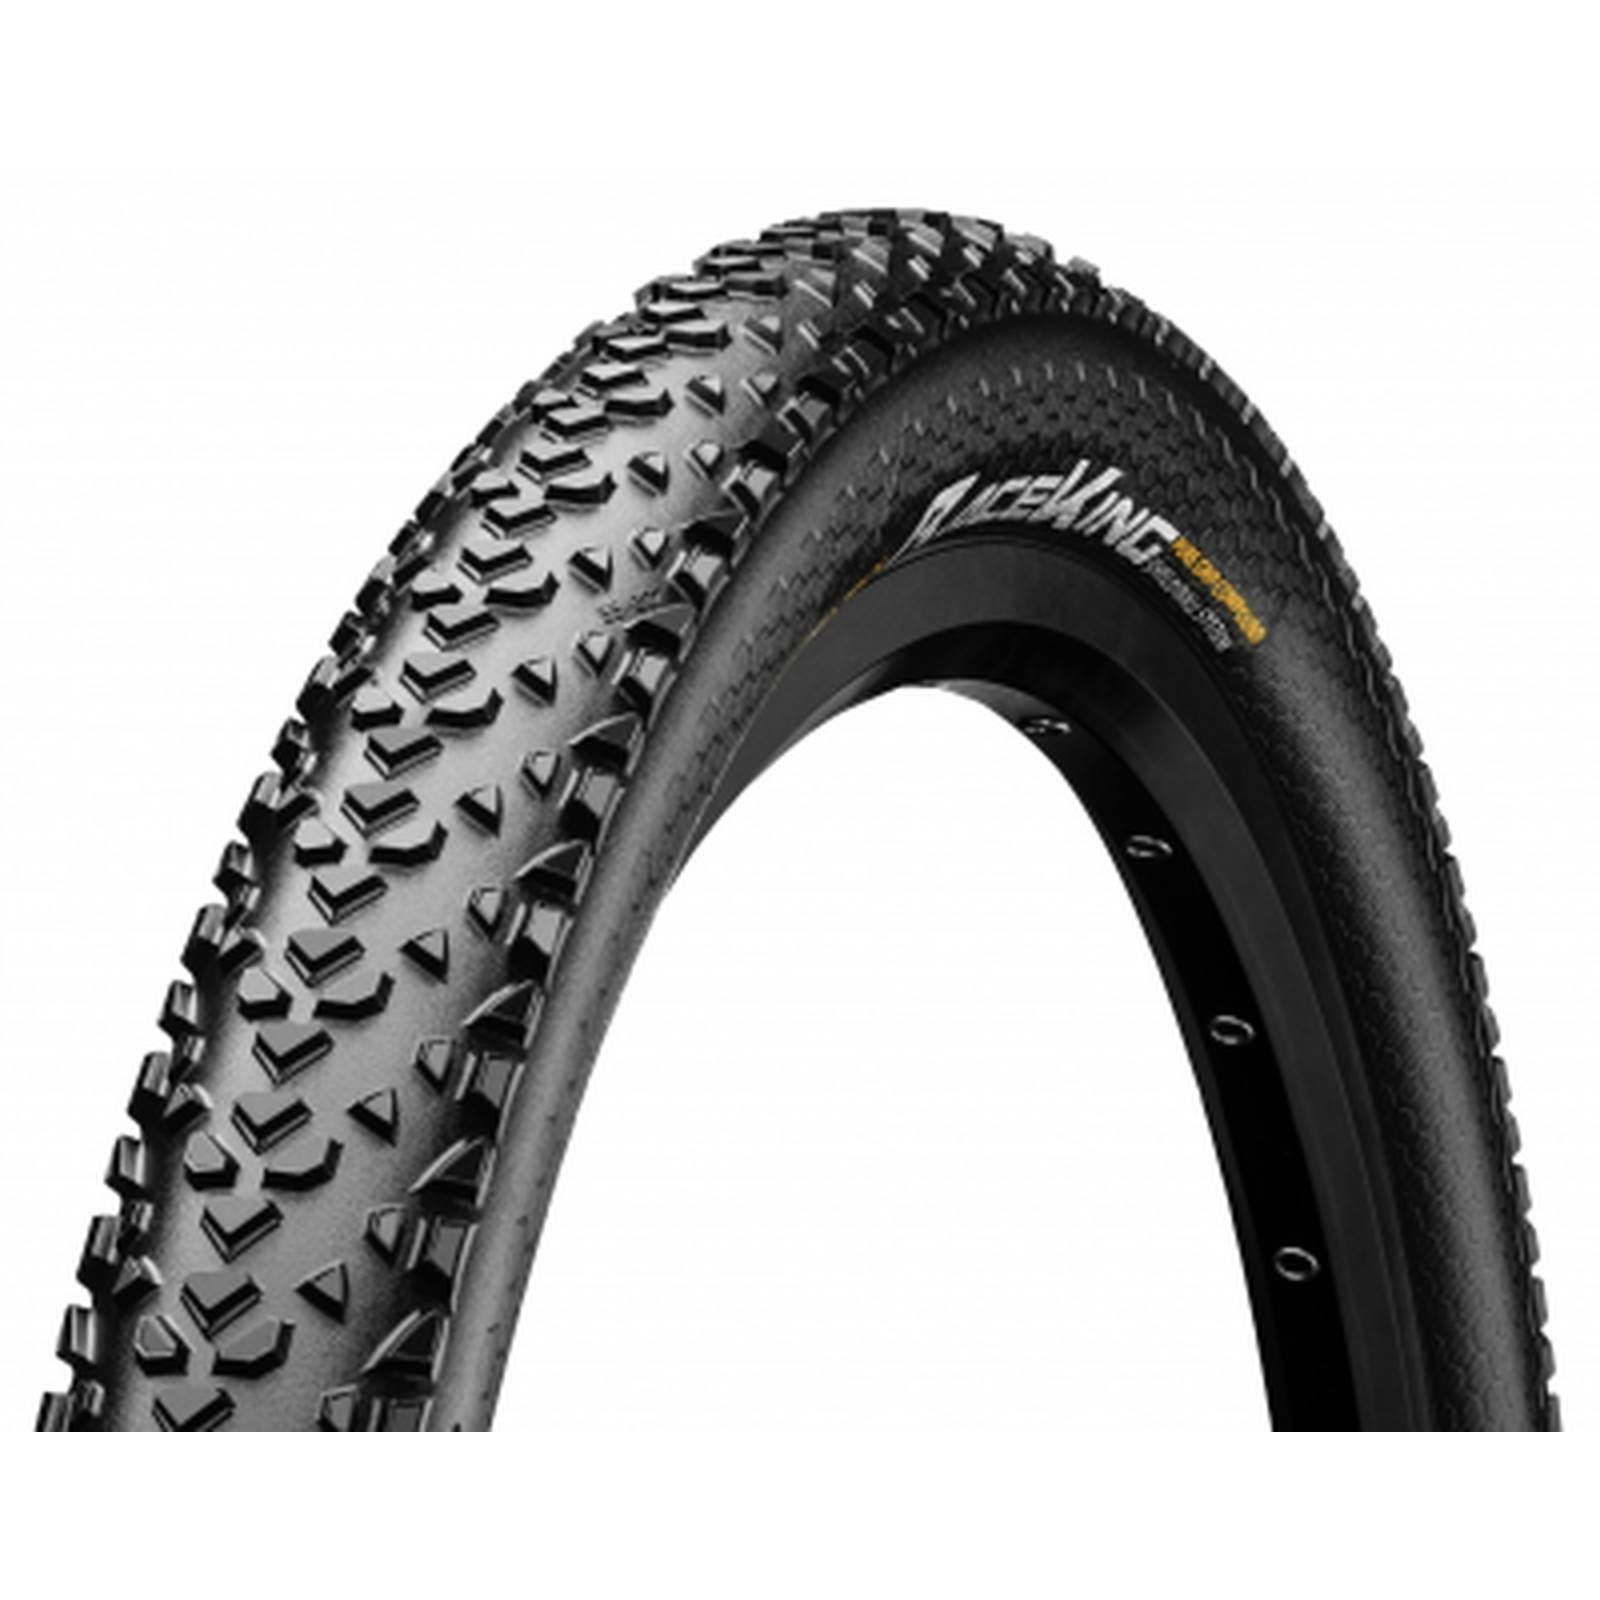 Continental Race King PureGrip MTB Tyre - 29 x 2.2.